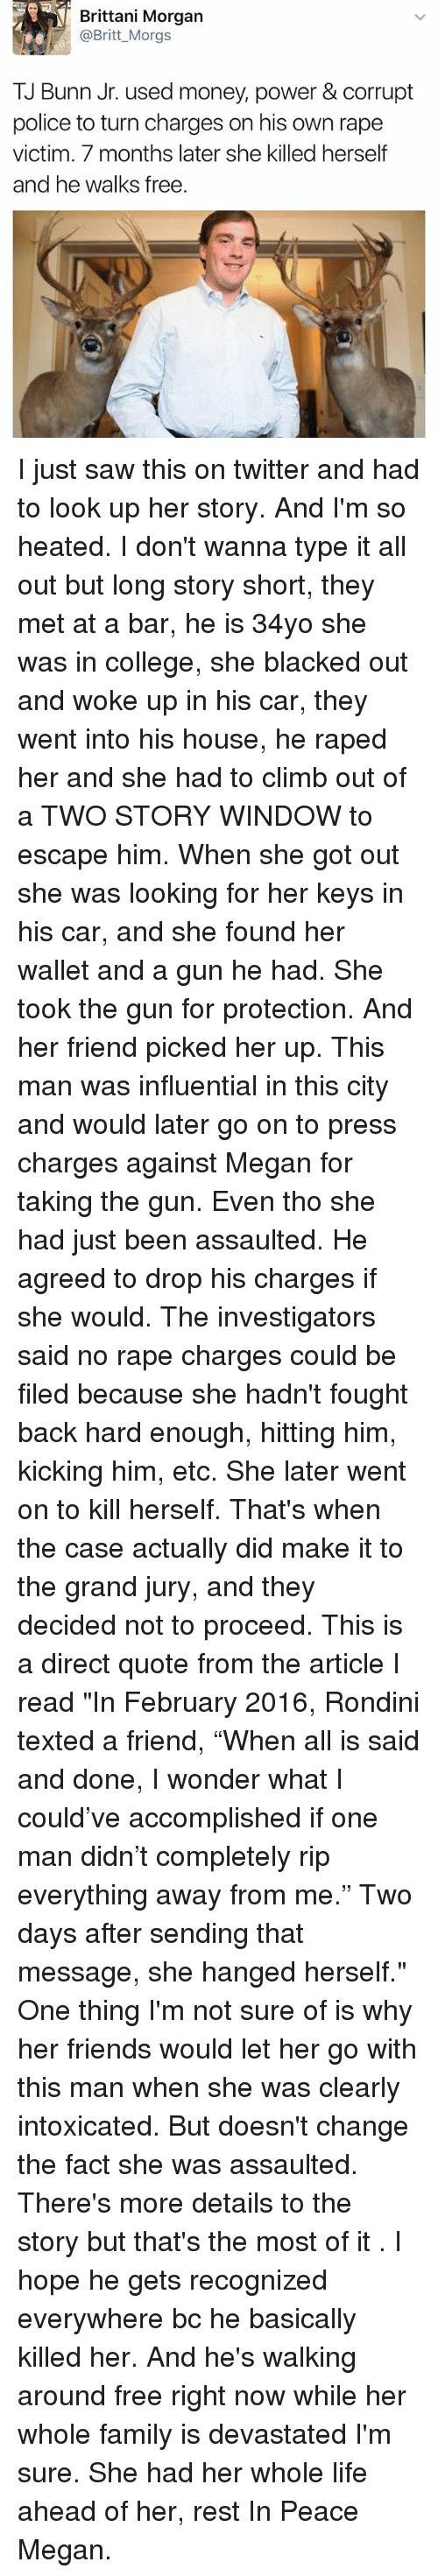 """Brittanie: Brittani Morgan  @Britt_Morgs  TJ Bunn Jr. used money, power & corrupt  police to turn charges on his own rape  victim. 7 months later she killed herself  and he walks free. I just saw this on twitter and had to look up her story. And I'm so heated. I don't wanna type it all out but long story short, they met at a bar, he is 34yo she was in college, she blacked out and woke up in his car, they went into his house, he raped her and she had to climb out of a TWO STORY WINDOW to escape him. When she got out she was looking for her keys in his car, and she found her wallet and a gun he had. She took the gun for protection. And her friend picked her up. This man was influential in this city and would later go on to press charges against Megan for taking the gun. Even tho she had just been assaulted. He agreed to drop his charges if she would. The investigators said no rape charges could be filed because she hadn't fought back hard enough, hitting him, kicking him, etc. She later went on to kill herself. That's when the case actually did make it to the grand jury, and they decided not to proceed. This is a direct quote from the article I read """"In February 2016, Rondini texted a friend, """"When all is said and done, I wonder what I could've accomplished if one man didn't completely rip everything away from me."""" Two days after sending that message, she hanged herself."""" One thing I'm not sure of is why her friends would let her go with this man when she was clearly intoxicated. But doesn't change the fact she was assaulted. There's more details to the story but that's the most of it . I hope he gets recognized everywhere bc he basically killed her. And he's walking around free right now while her whole family is devastated I'm sure. She had her whole life ahead of her, rest In Peace Megan."""